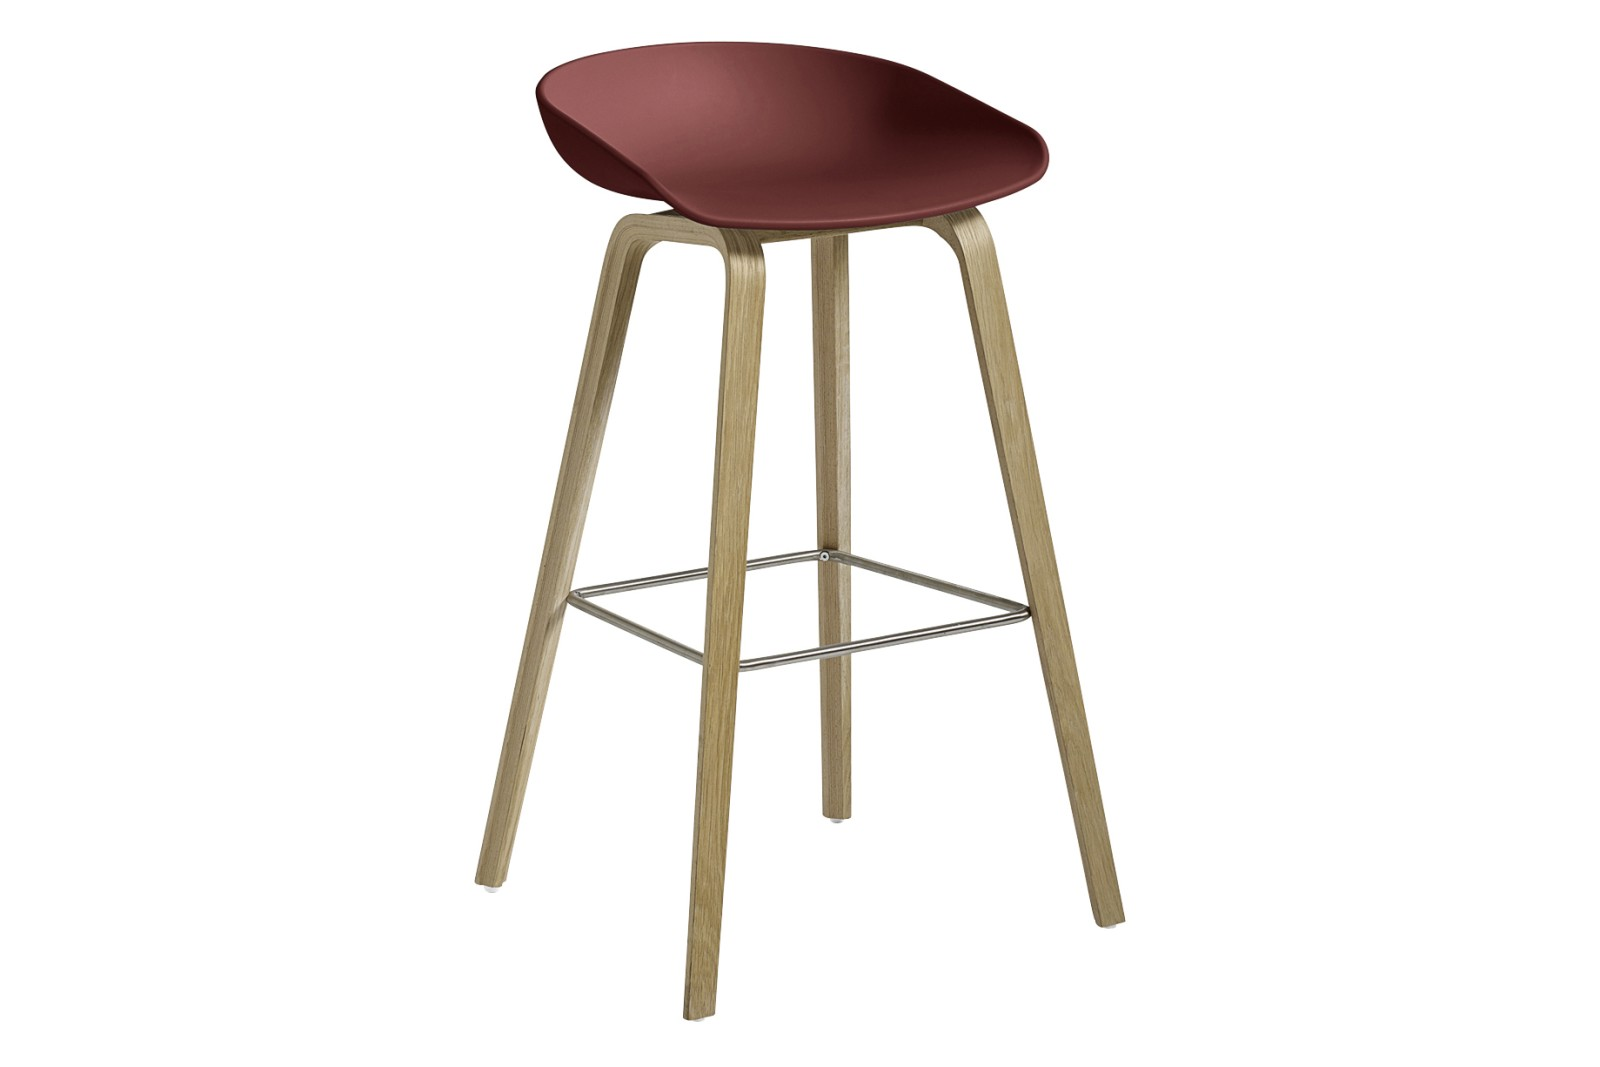 AAS 32 High Stool Plastic Brick, Wood Soaped Oak, Metal Stainless Steel